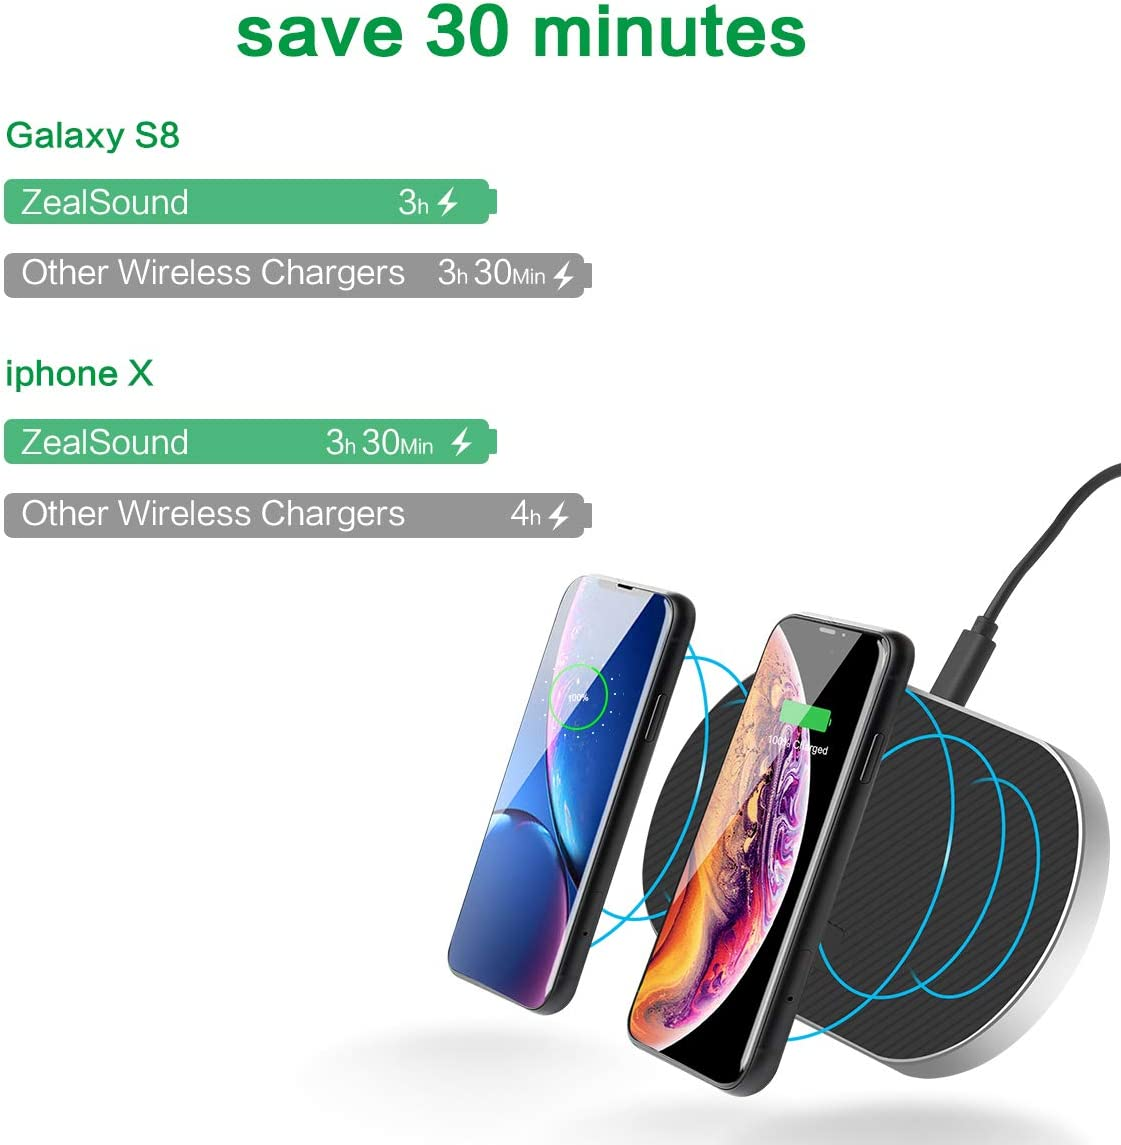 Black 5 Coils Wireless Charger Metal Aluminum Dual Fast Anti-Slip Silicon with Quick QC 3.0 Adapter Chargers Station Dock for Qi Phones New AirPods Multiple Devices ZealSound Wireless Charging Pad